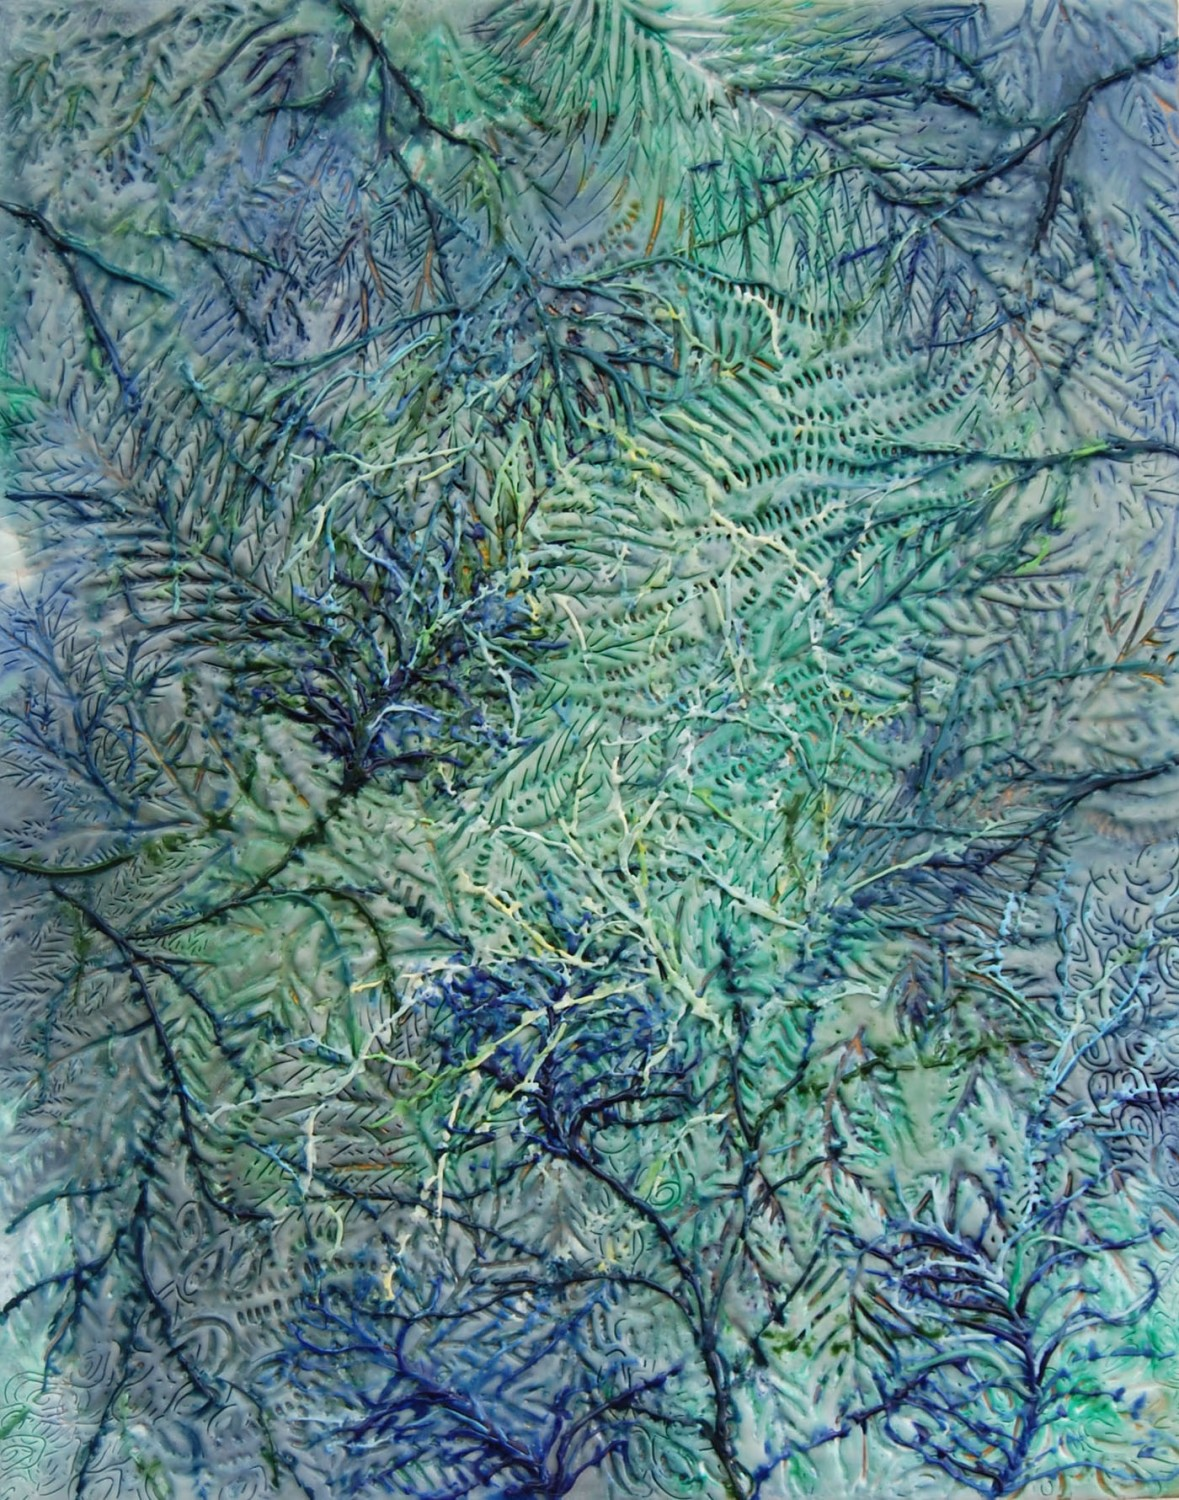 Fern Viscera, 2010, encaustic on panel, 28 x 22 inches